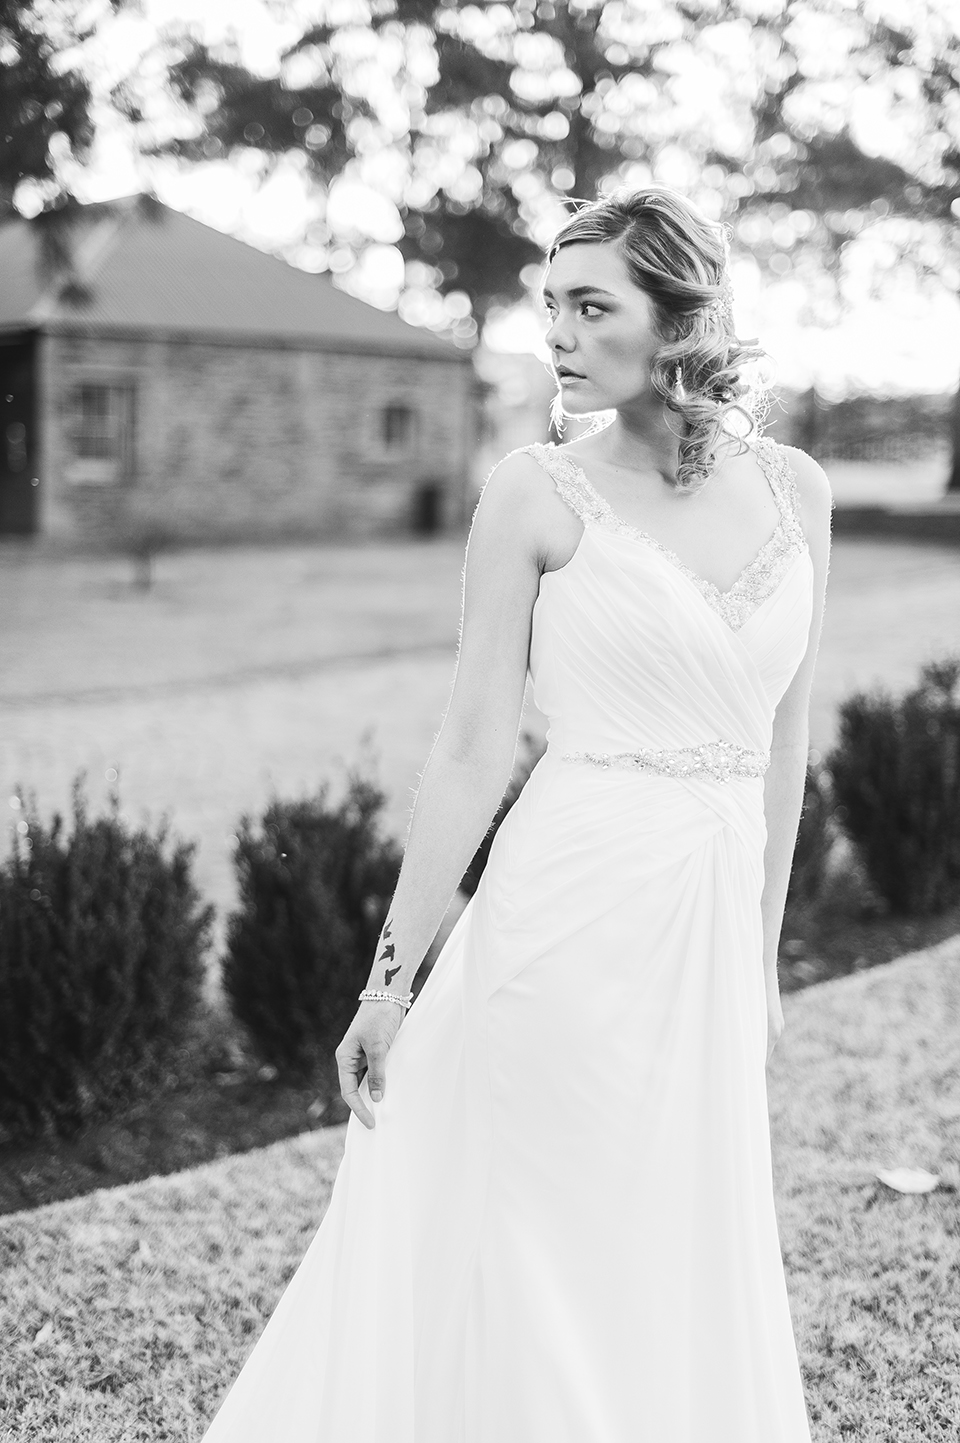 RyanParker_Photographer_Wedding_Portfolio_DSC_0279.jpg